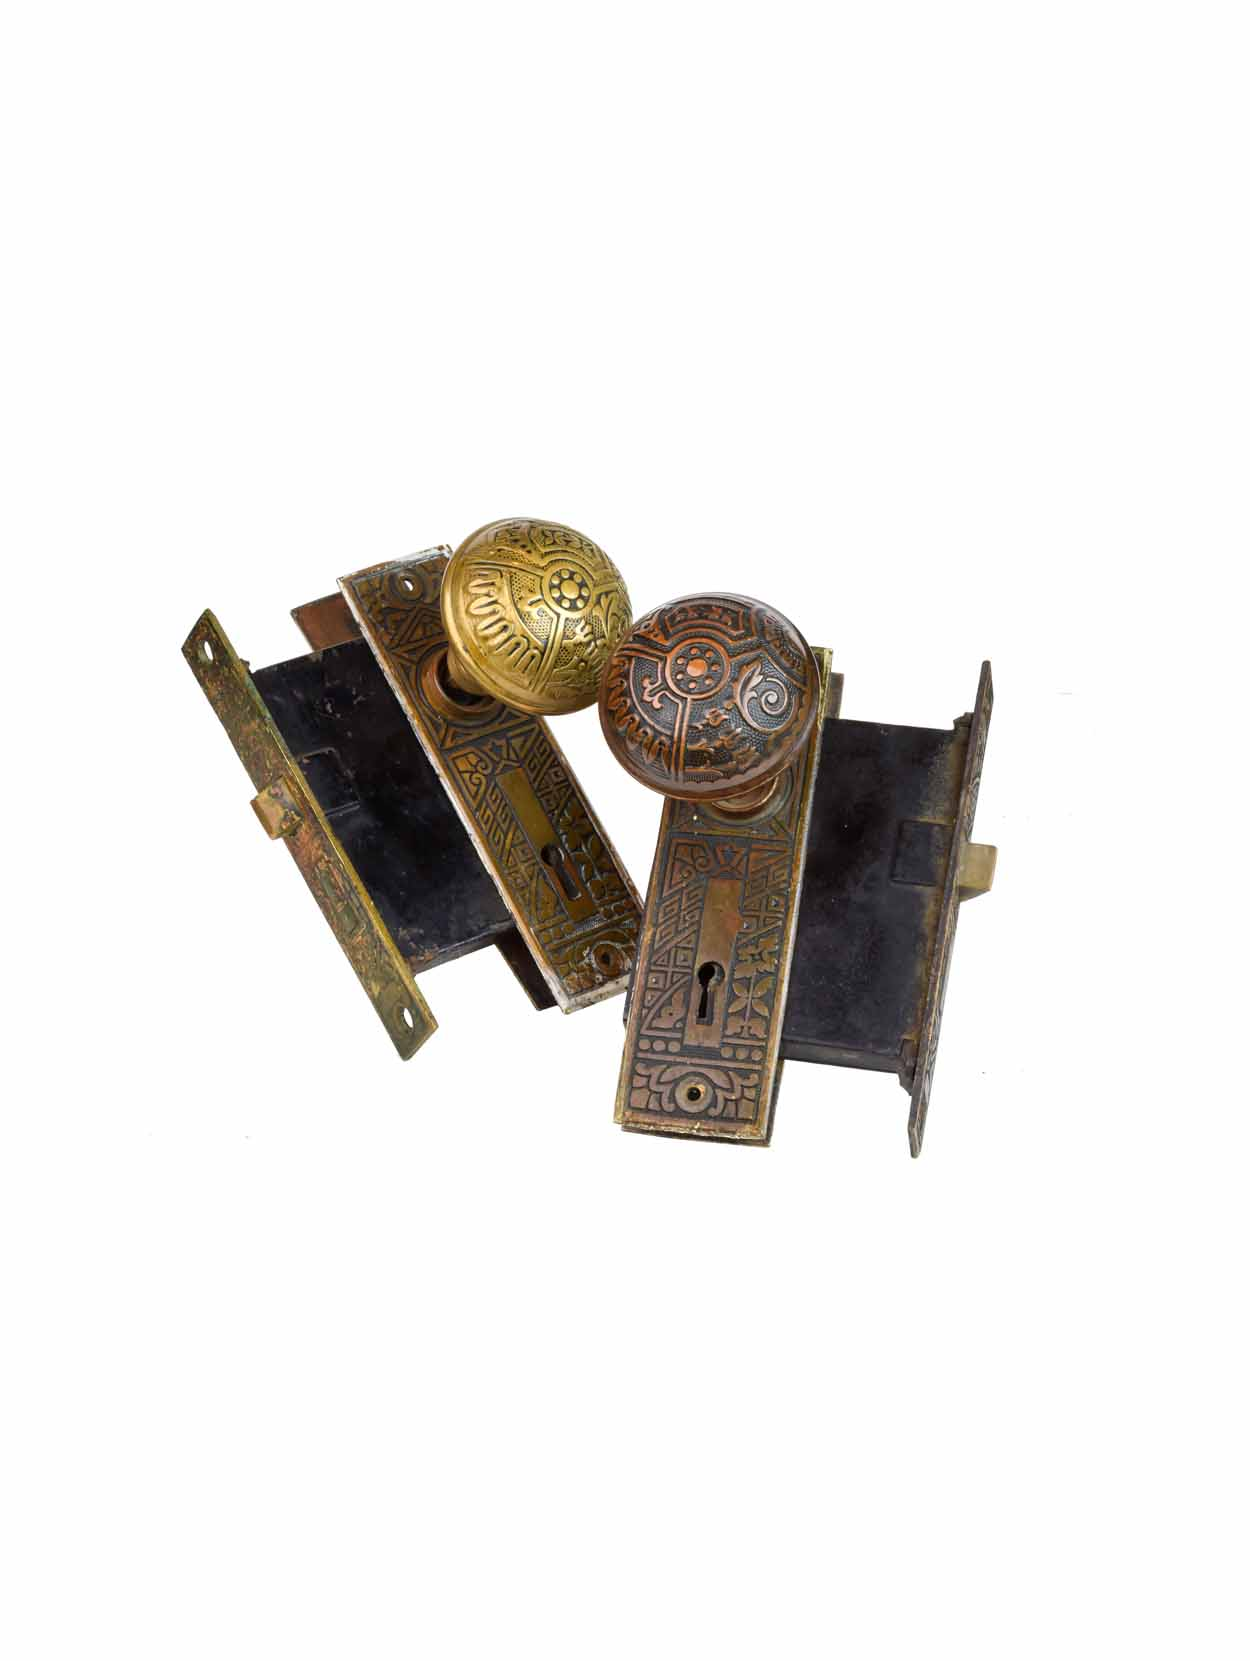 "CORBIN ""CEYLON"" CAST BRASS KNOB SETS AA# H20138   22 sets available $285.00 each set"